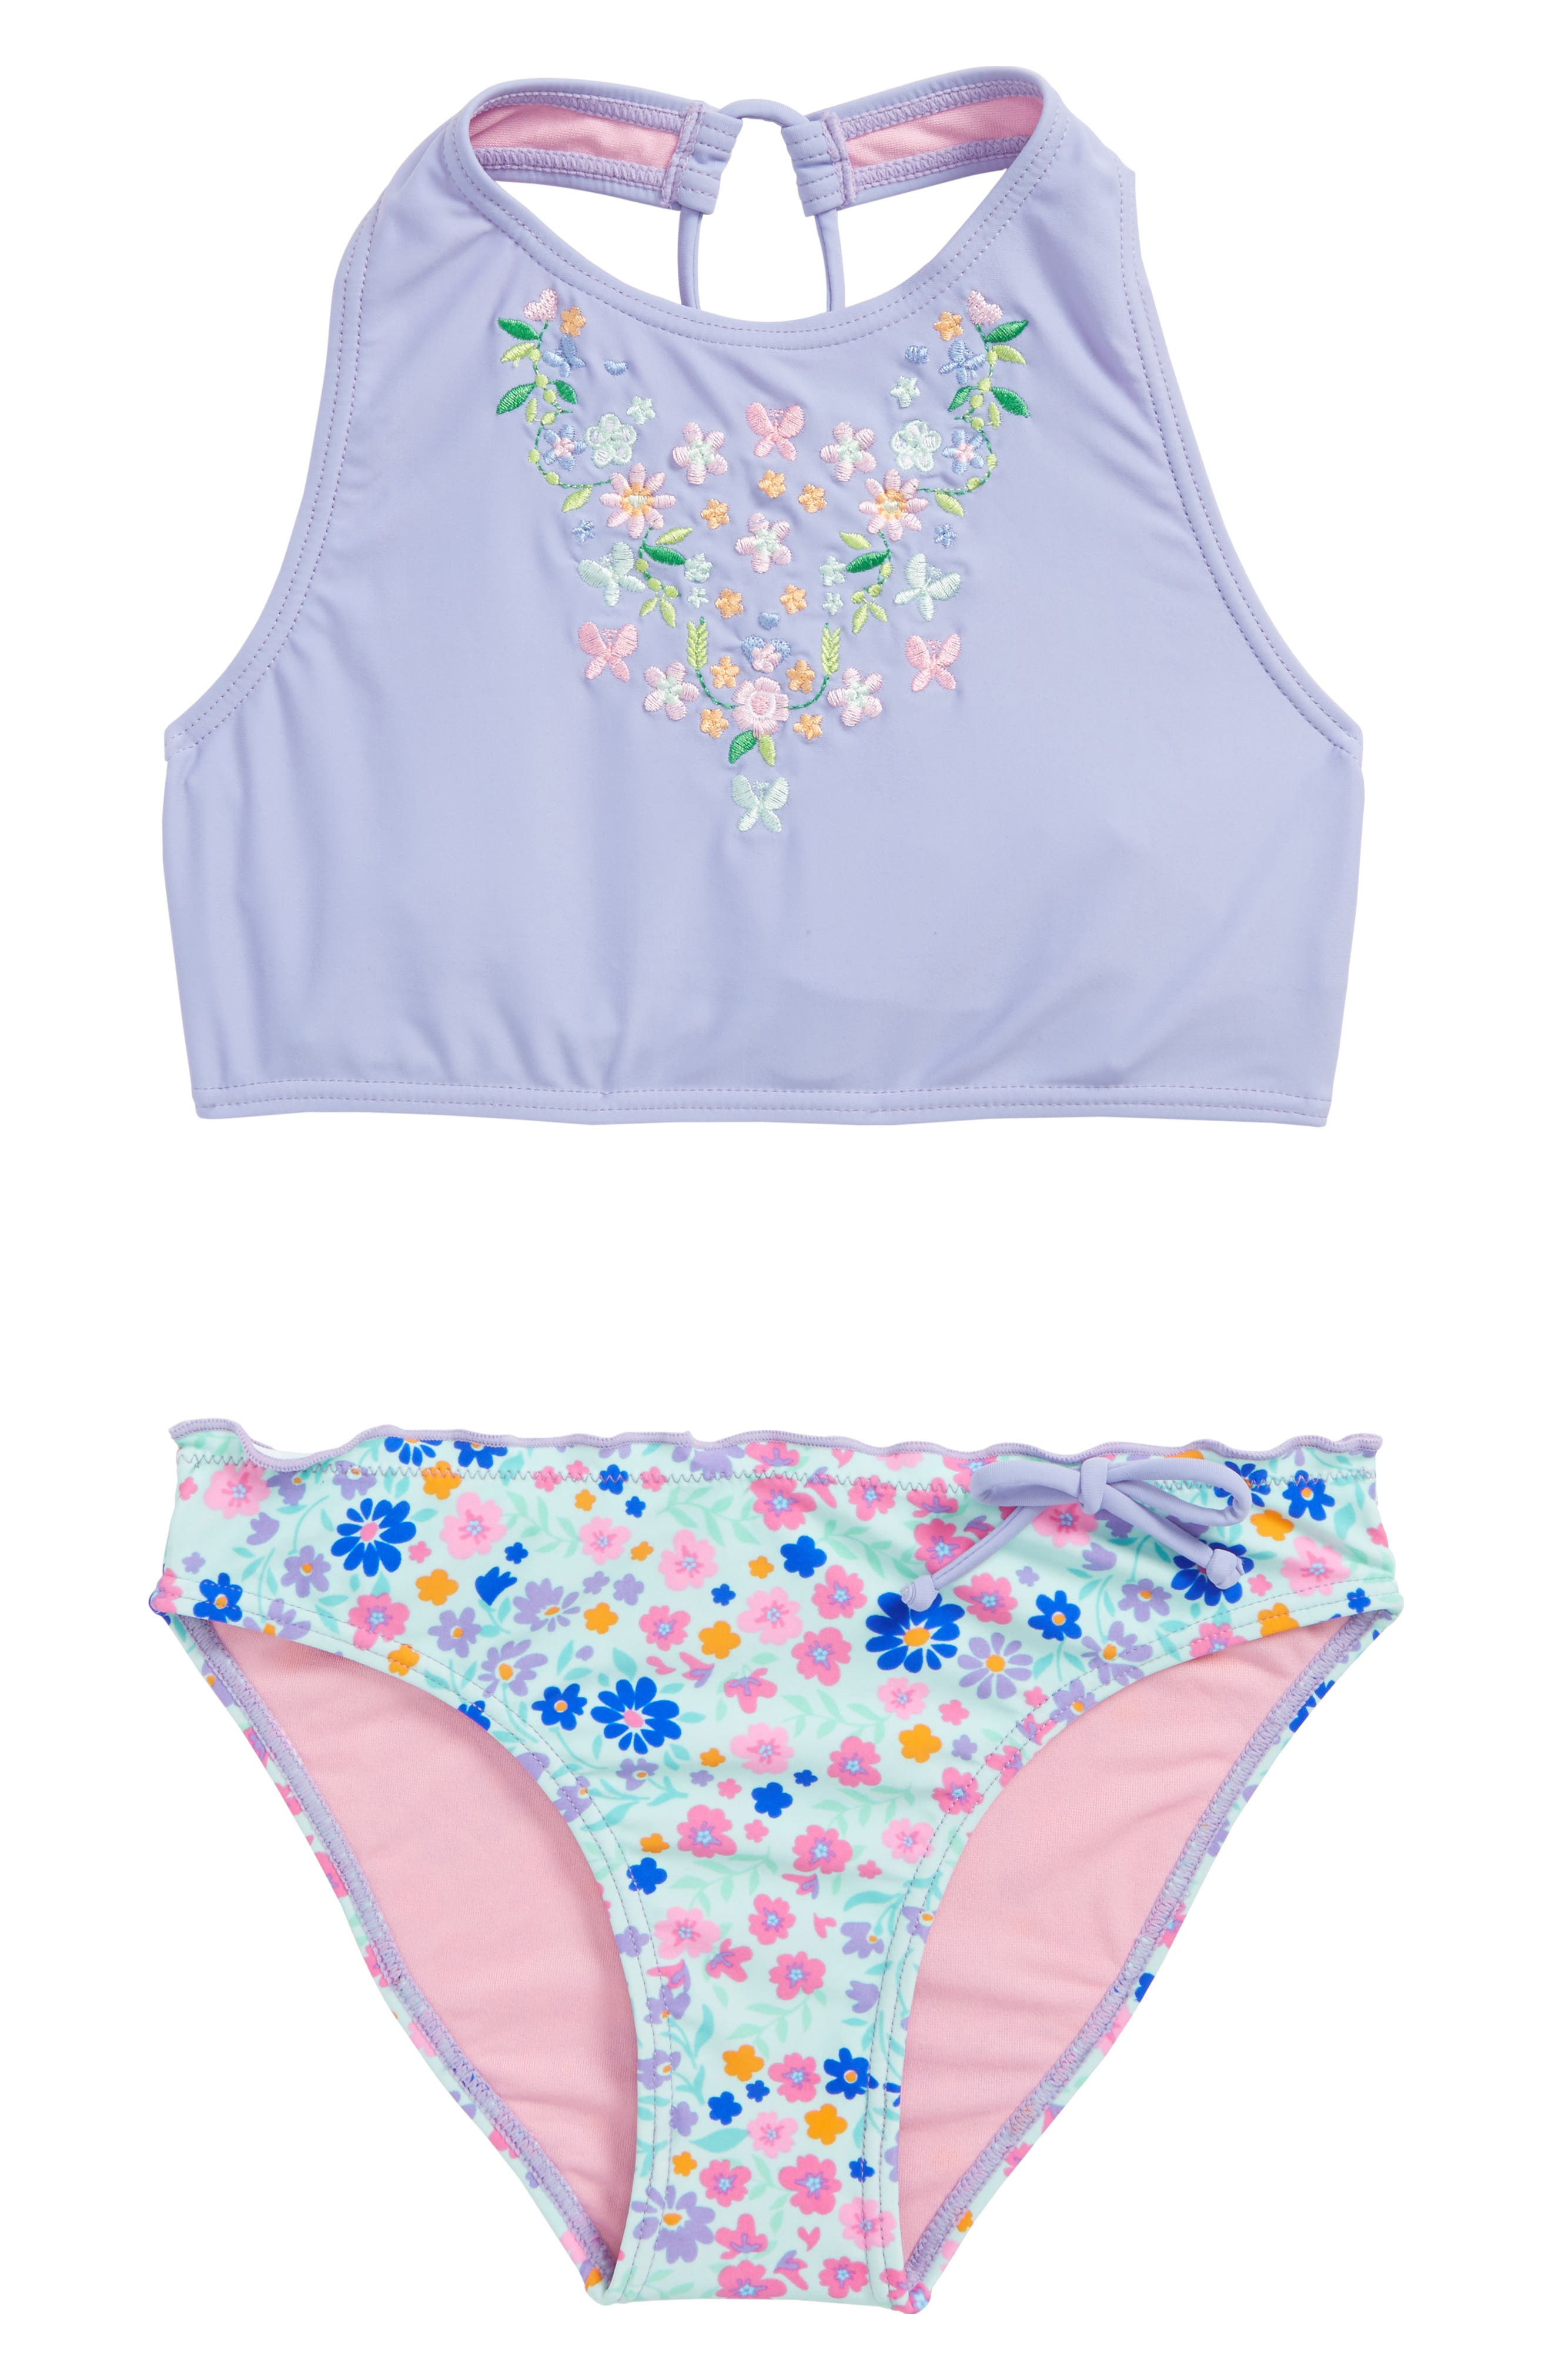 In Bloom Two-Piece Swimsuit,                             Main thumbnail 1, color,                             Deep Periwinkle Combo